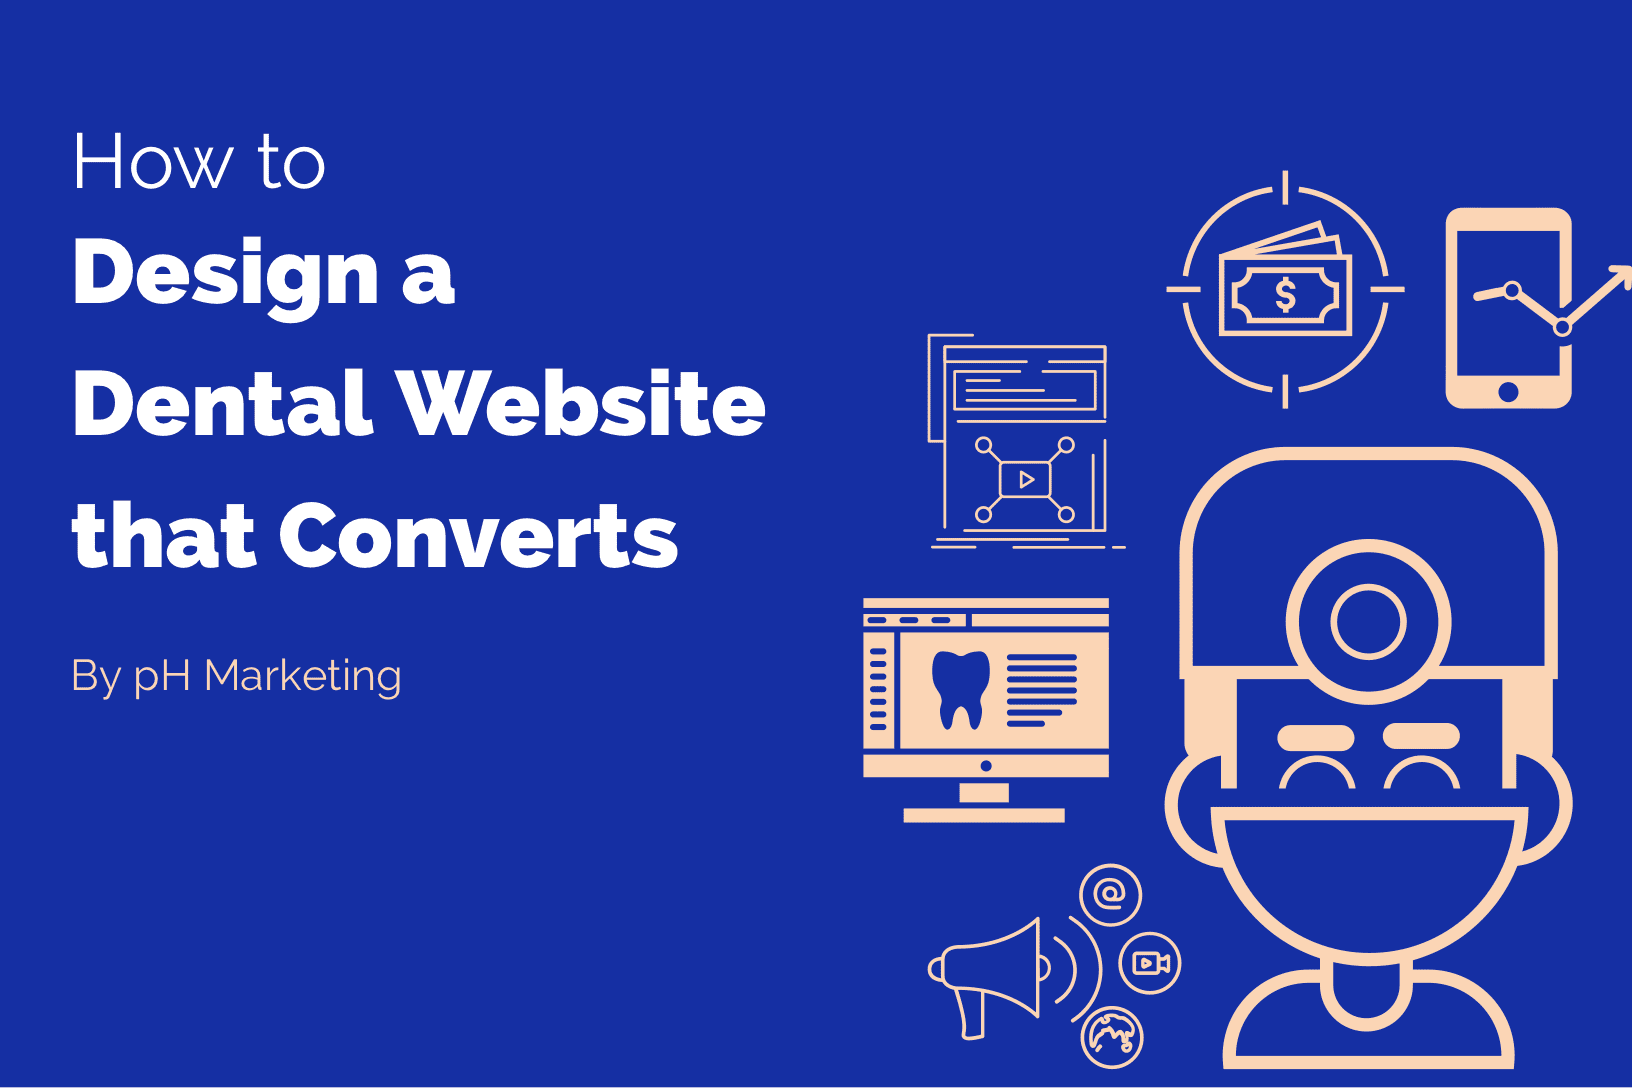 How to design a dental website that converts - by pH Marketing